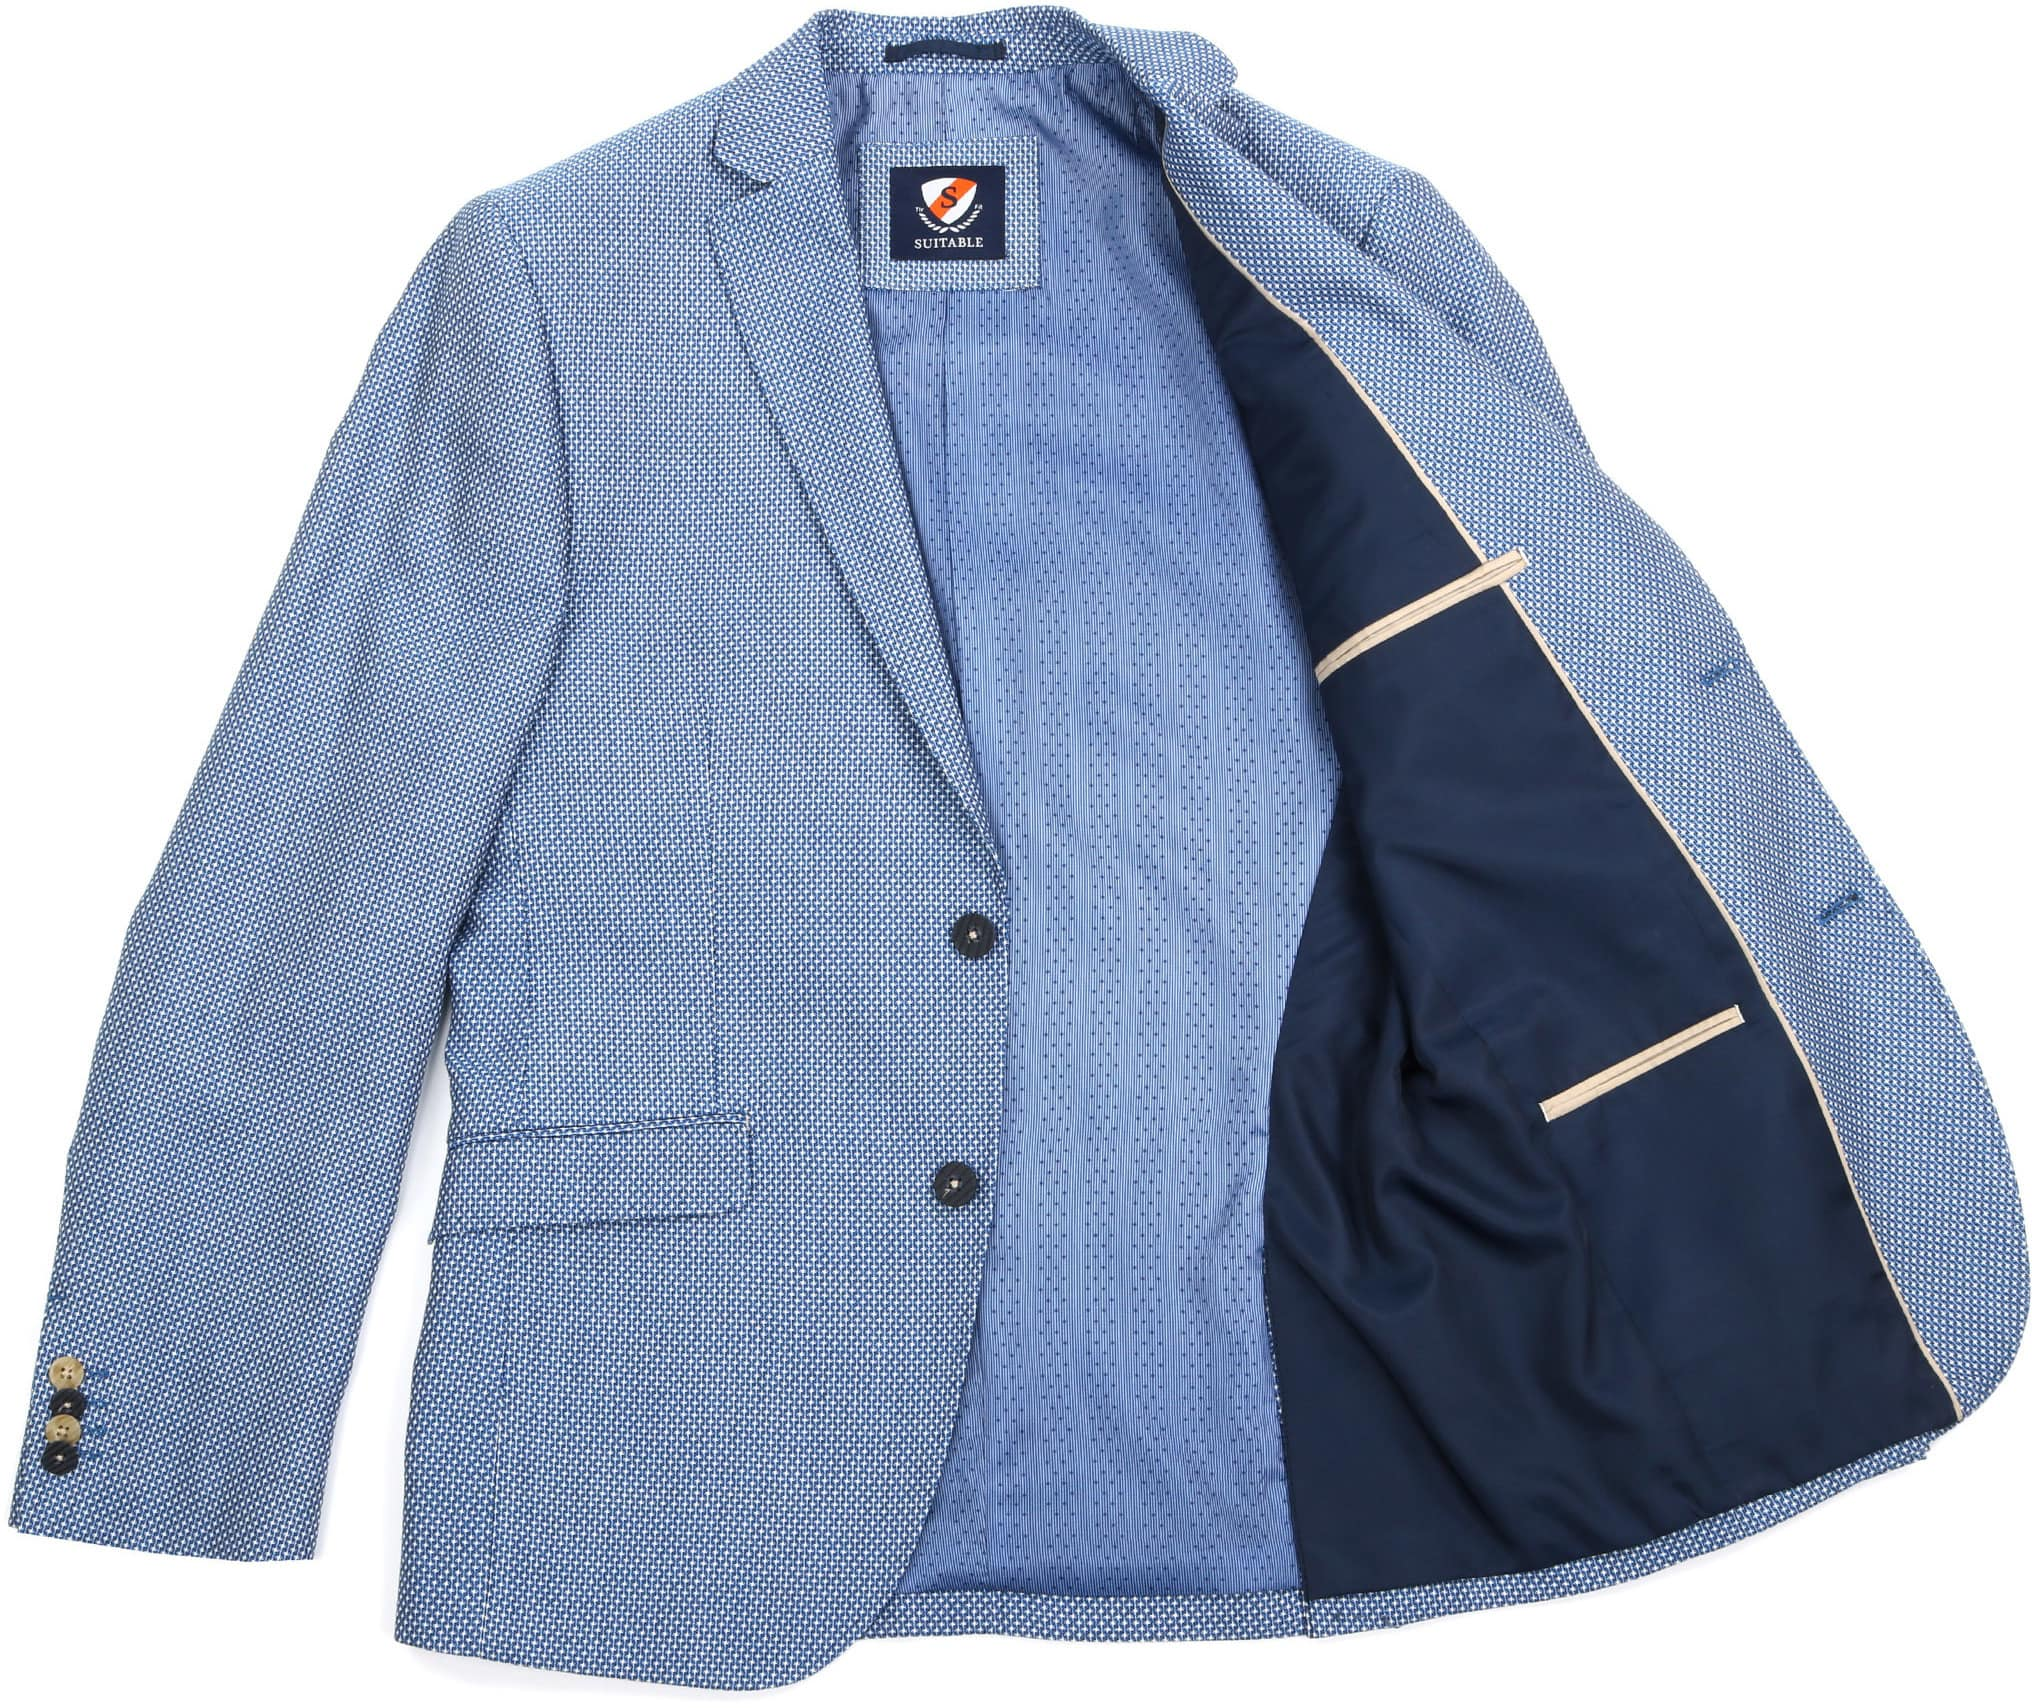 Suitable Blazer Frejus Blau foto 5